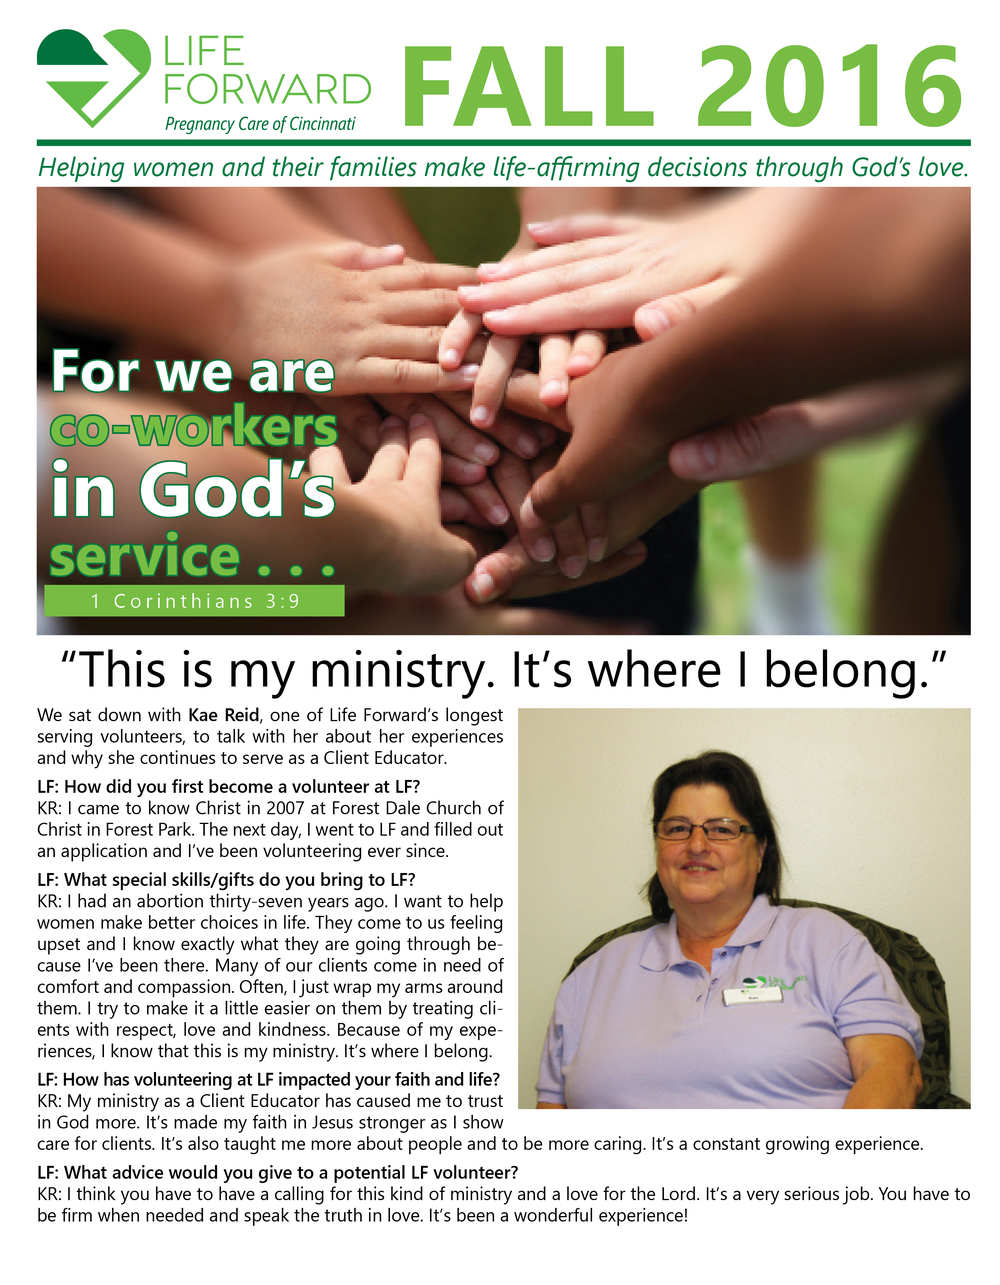 2016 Life Forward Fall Newsletter.png